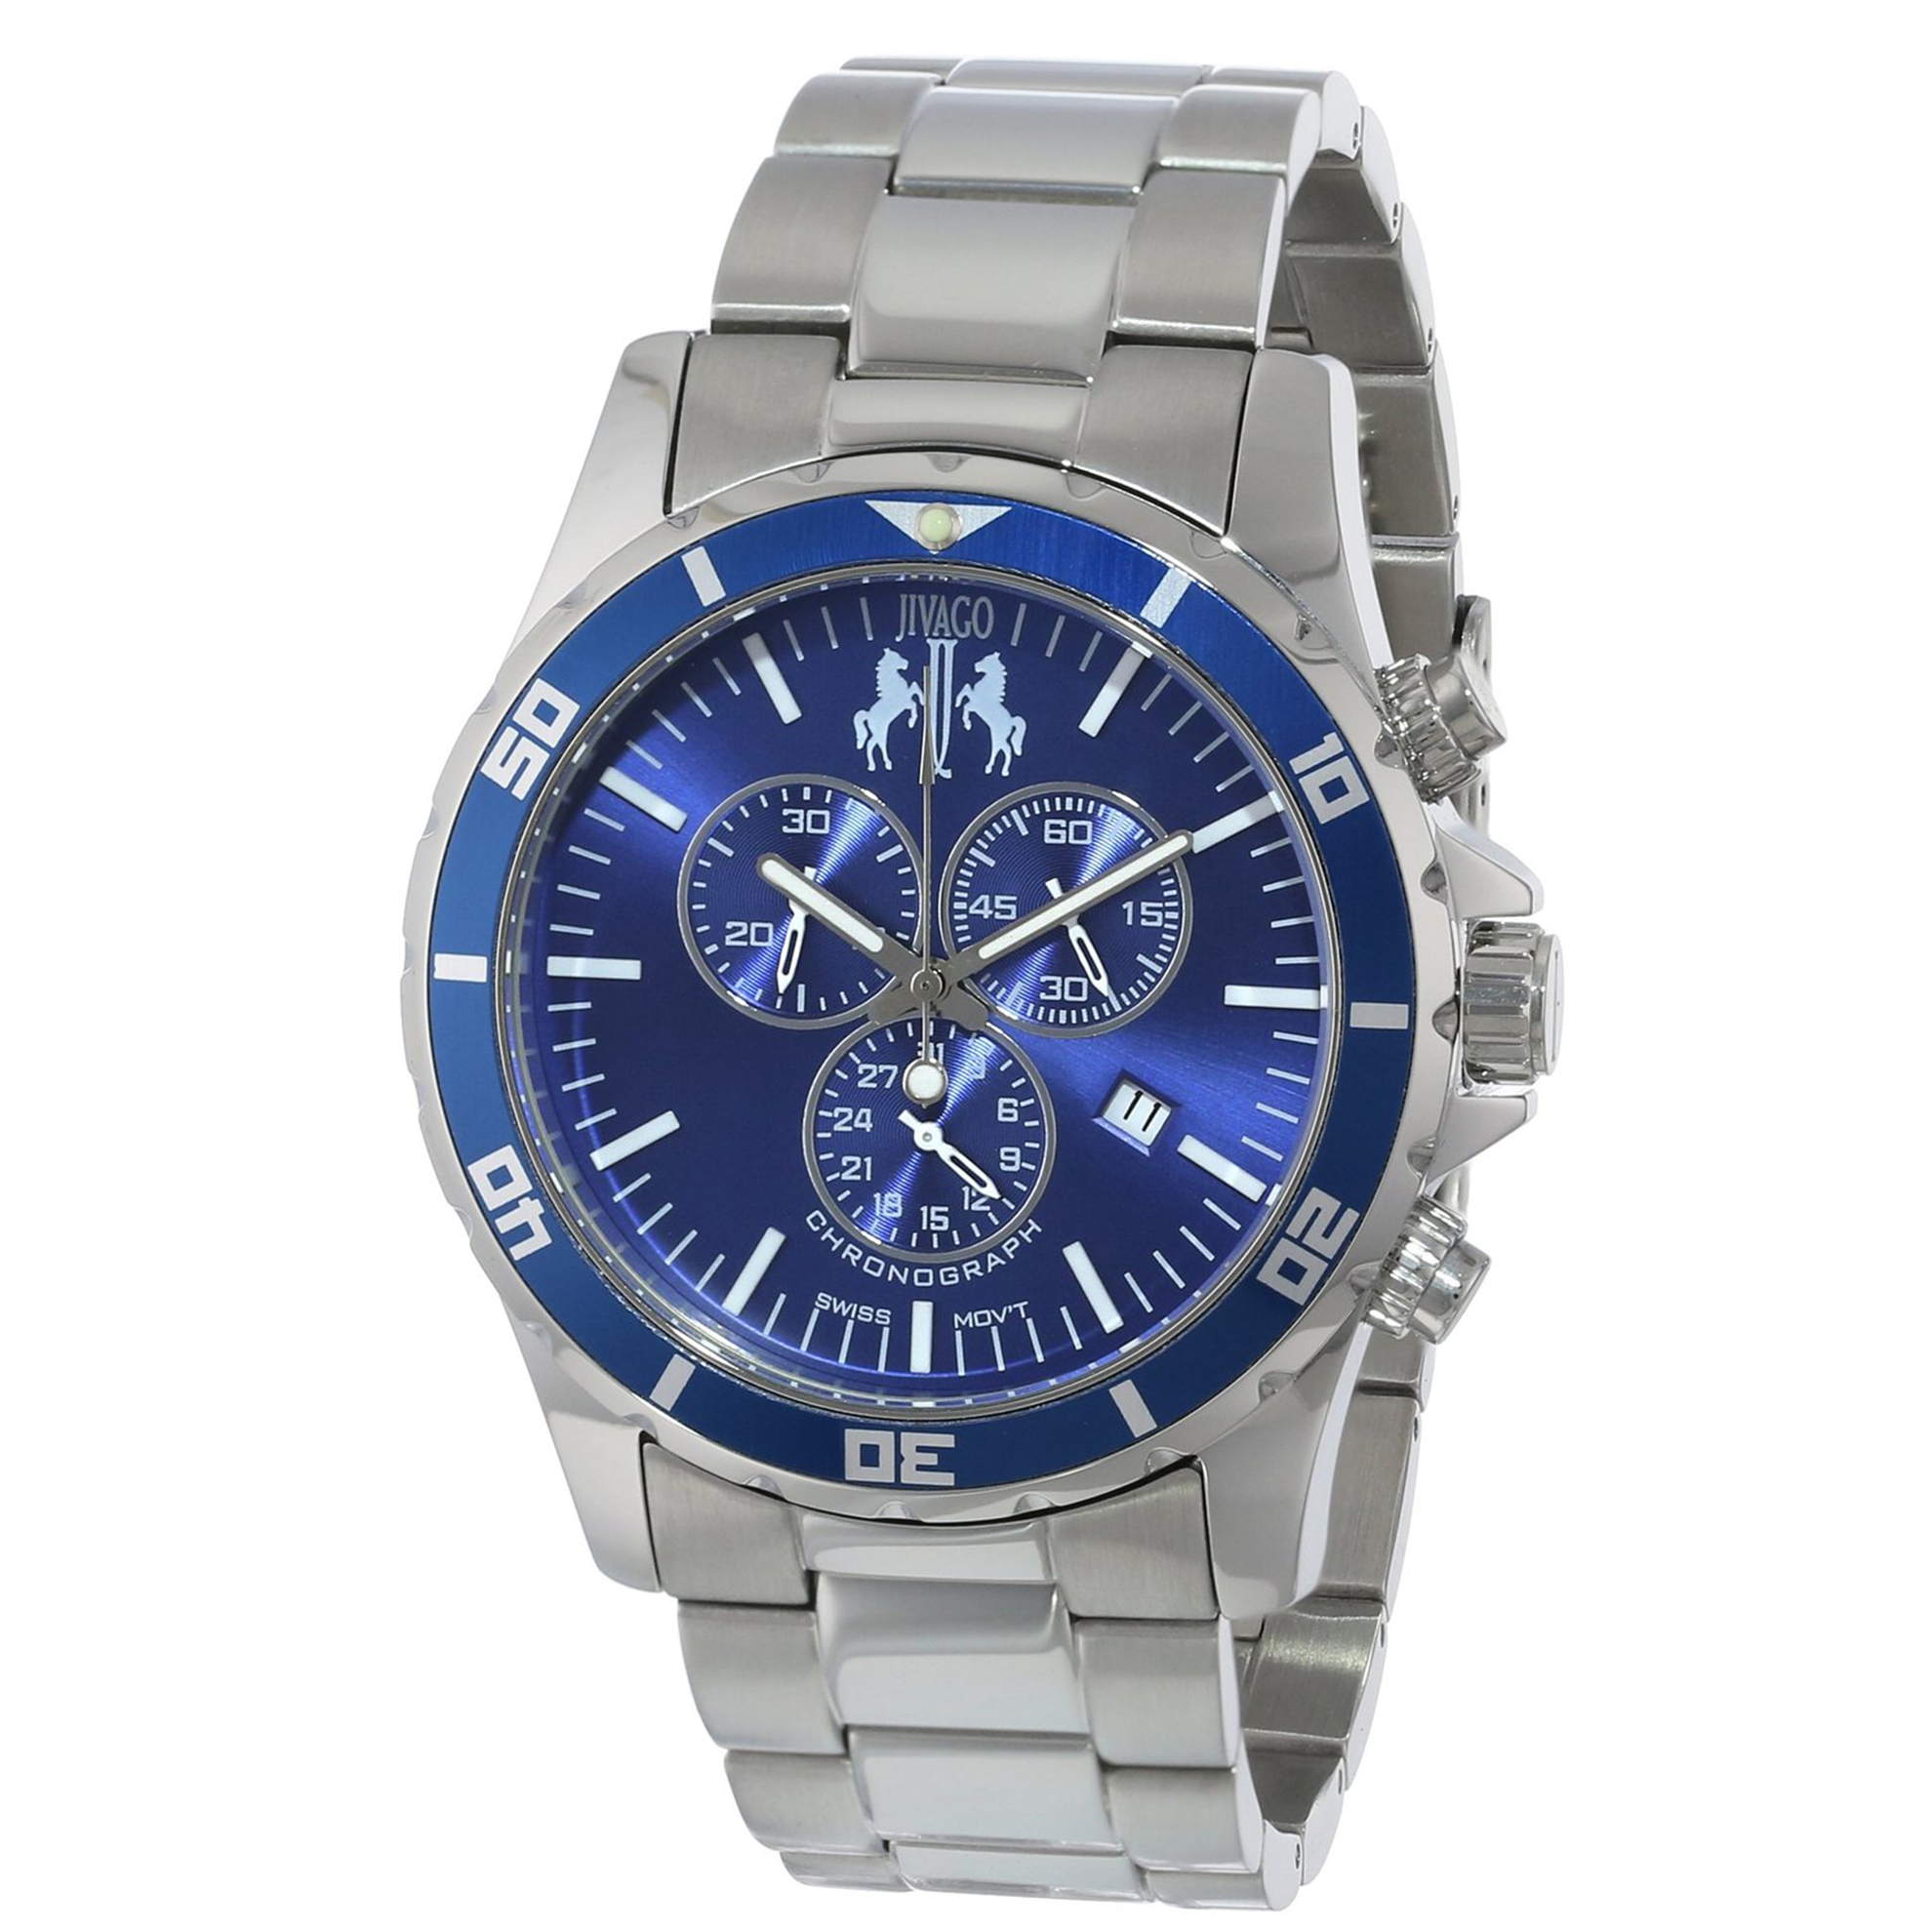 Jivago JV6127 Jivago Men's Ultimate Diver Swiss Chronograph Blue Dial